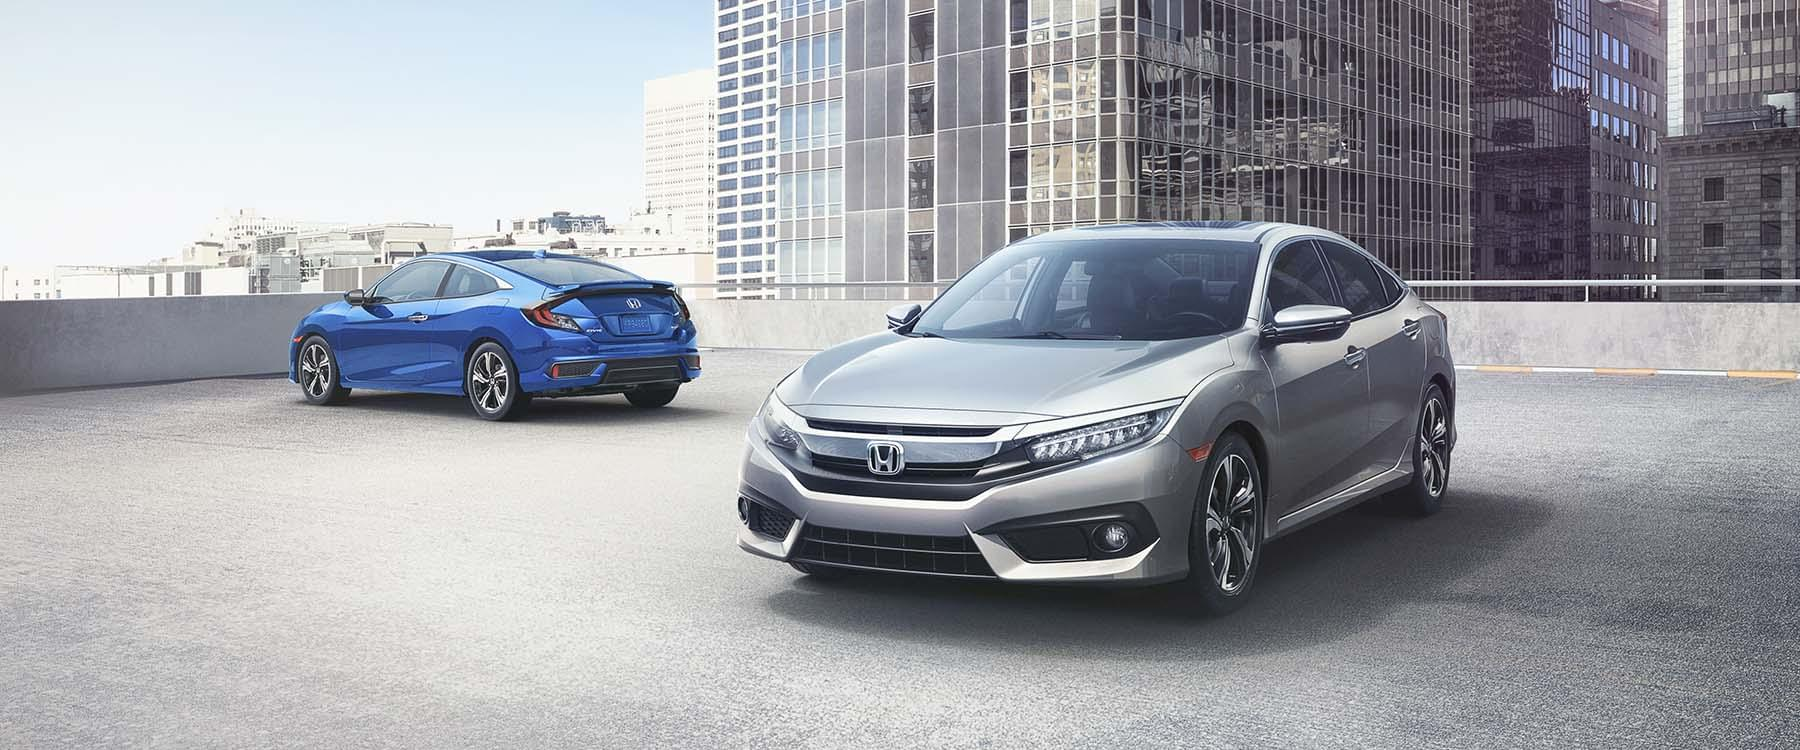 The versatility of the 2017 honda civic sedan trim levels for Montana honda dealers